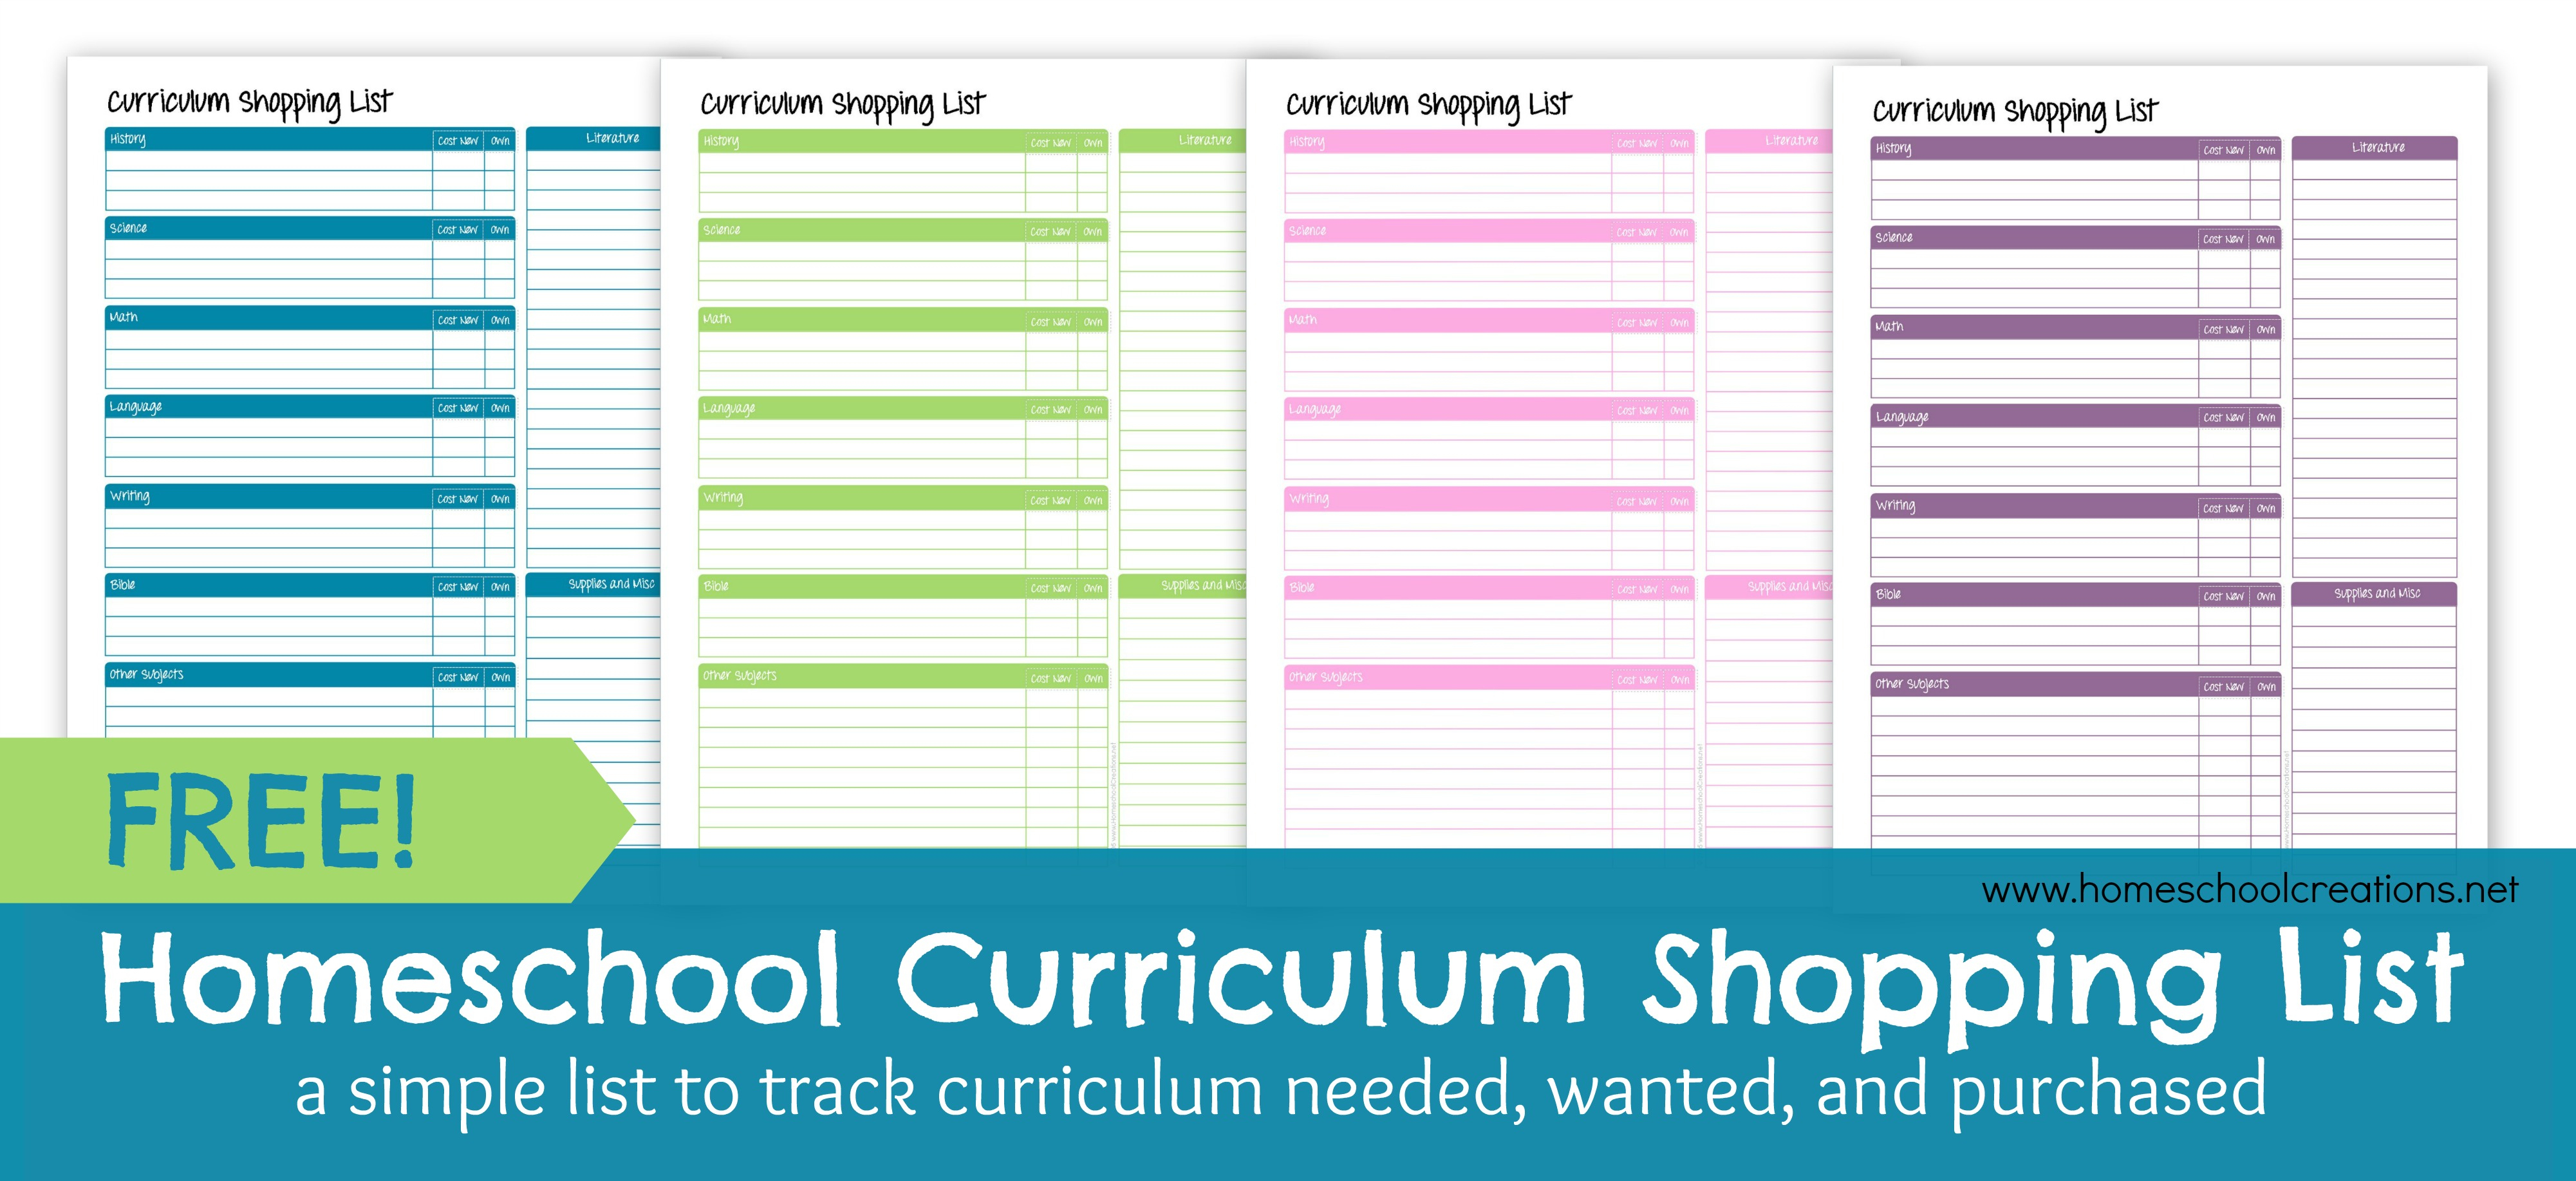 Homeschool Curriculum Shopping List: Free Printable - Free Printable Homeschool Curriculum